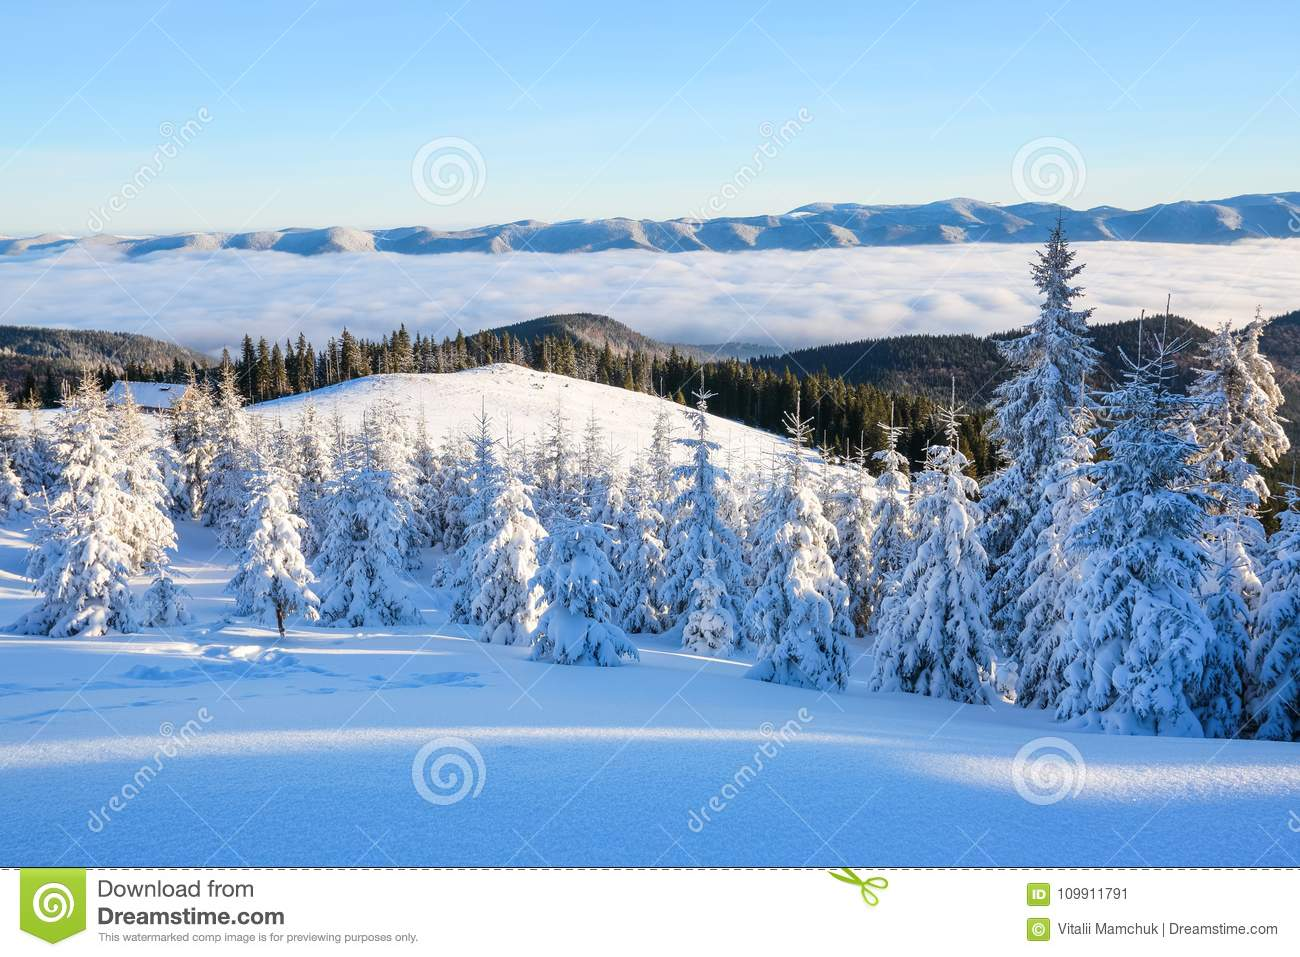 Mountains in a foggy morning and snow covered green Christmas trees. Marvelous winter background. Beautiful Christmas holliday.